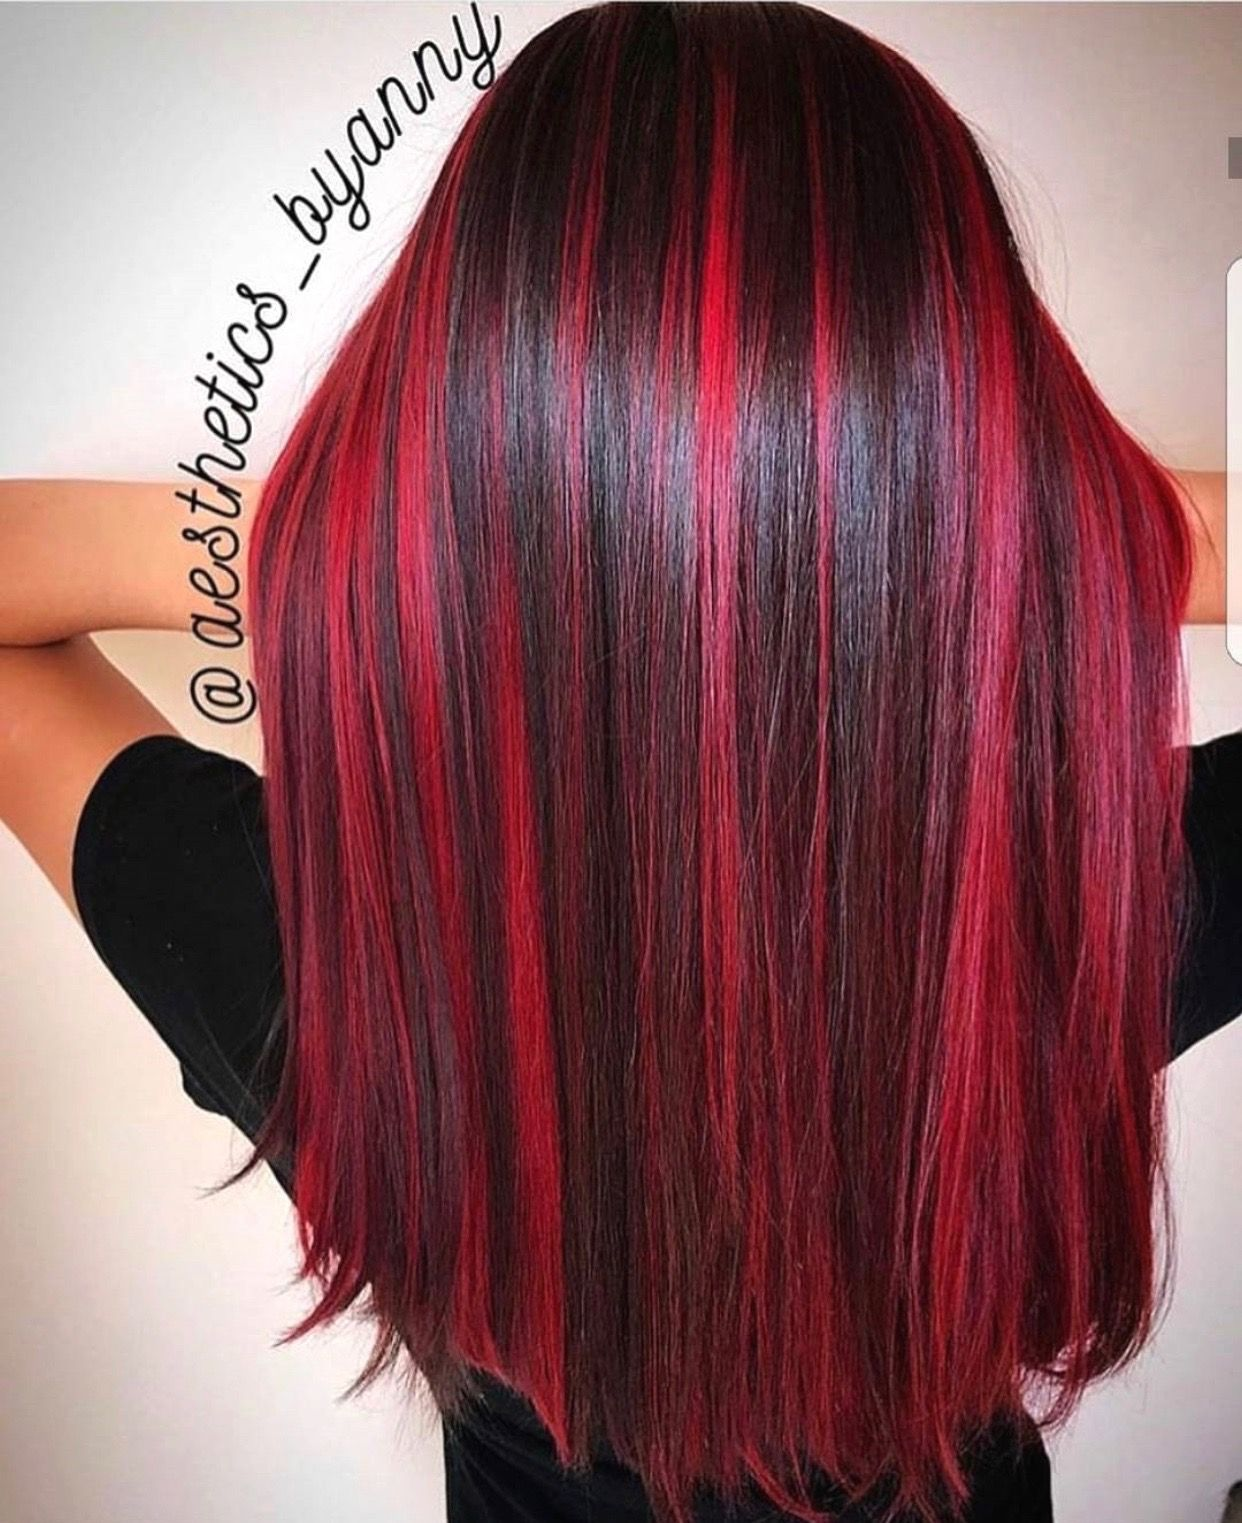 Black Long Hair With Lots Of Dark Pink Red Burgundy Highlights Color Added Red Hair With Highlights Hair Highlights Red Hair Color